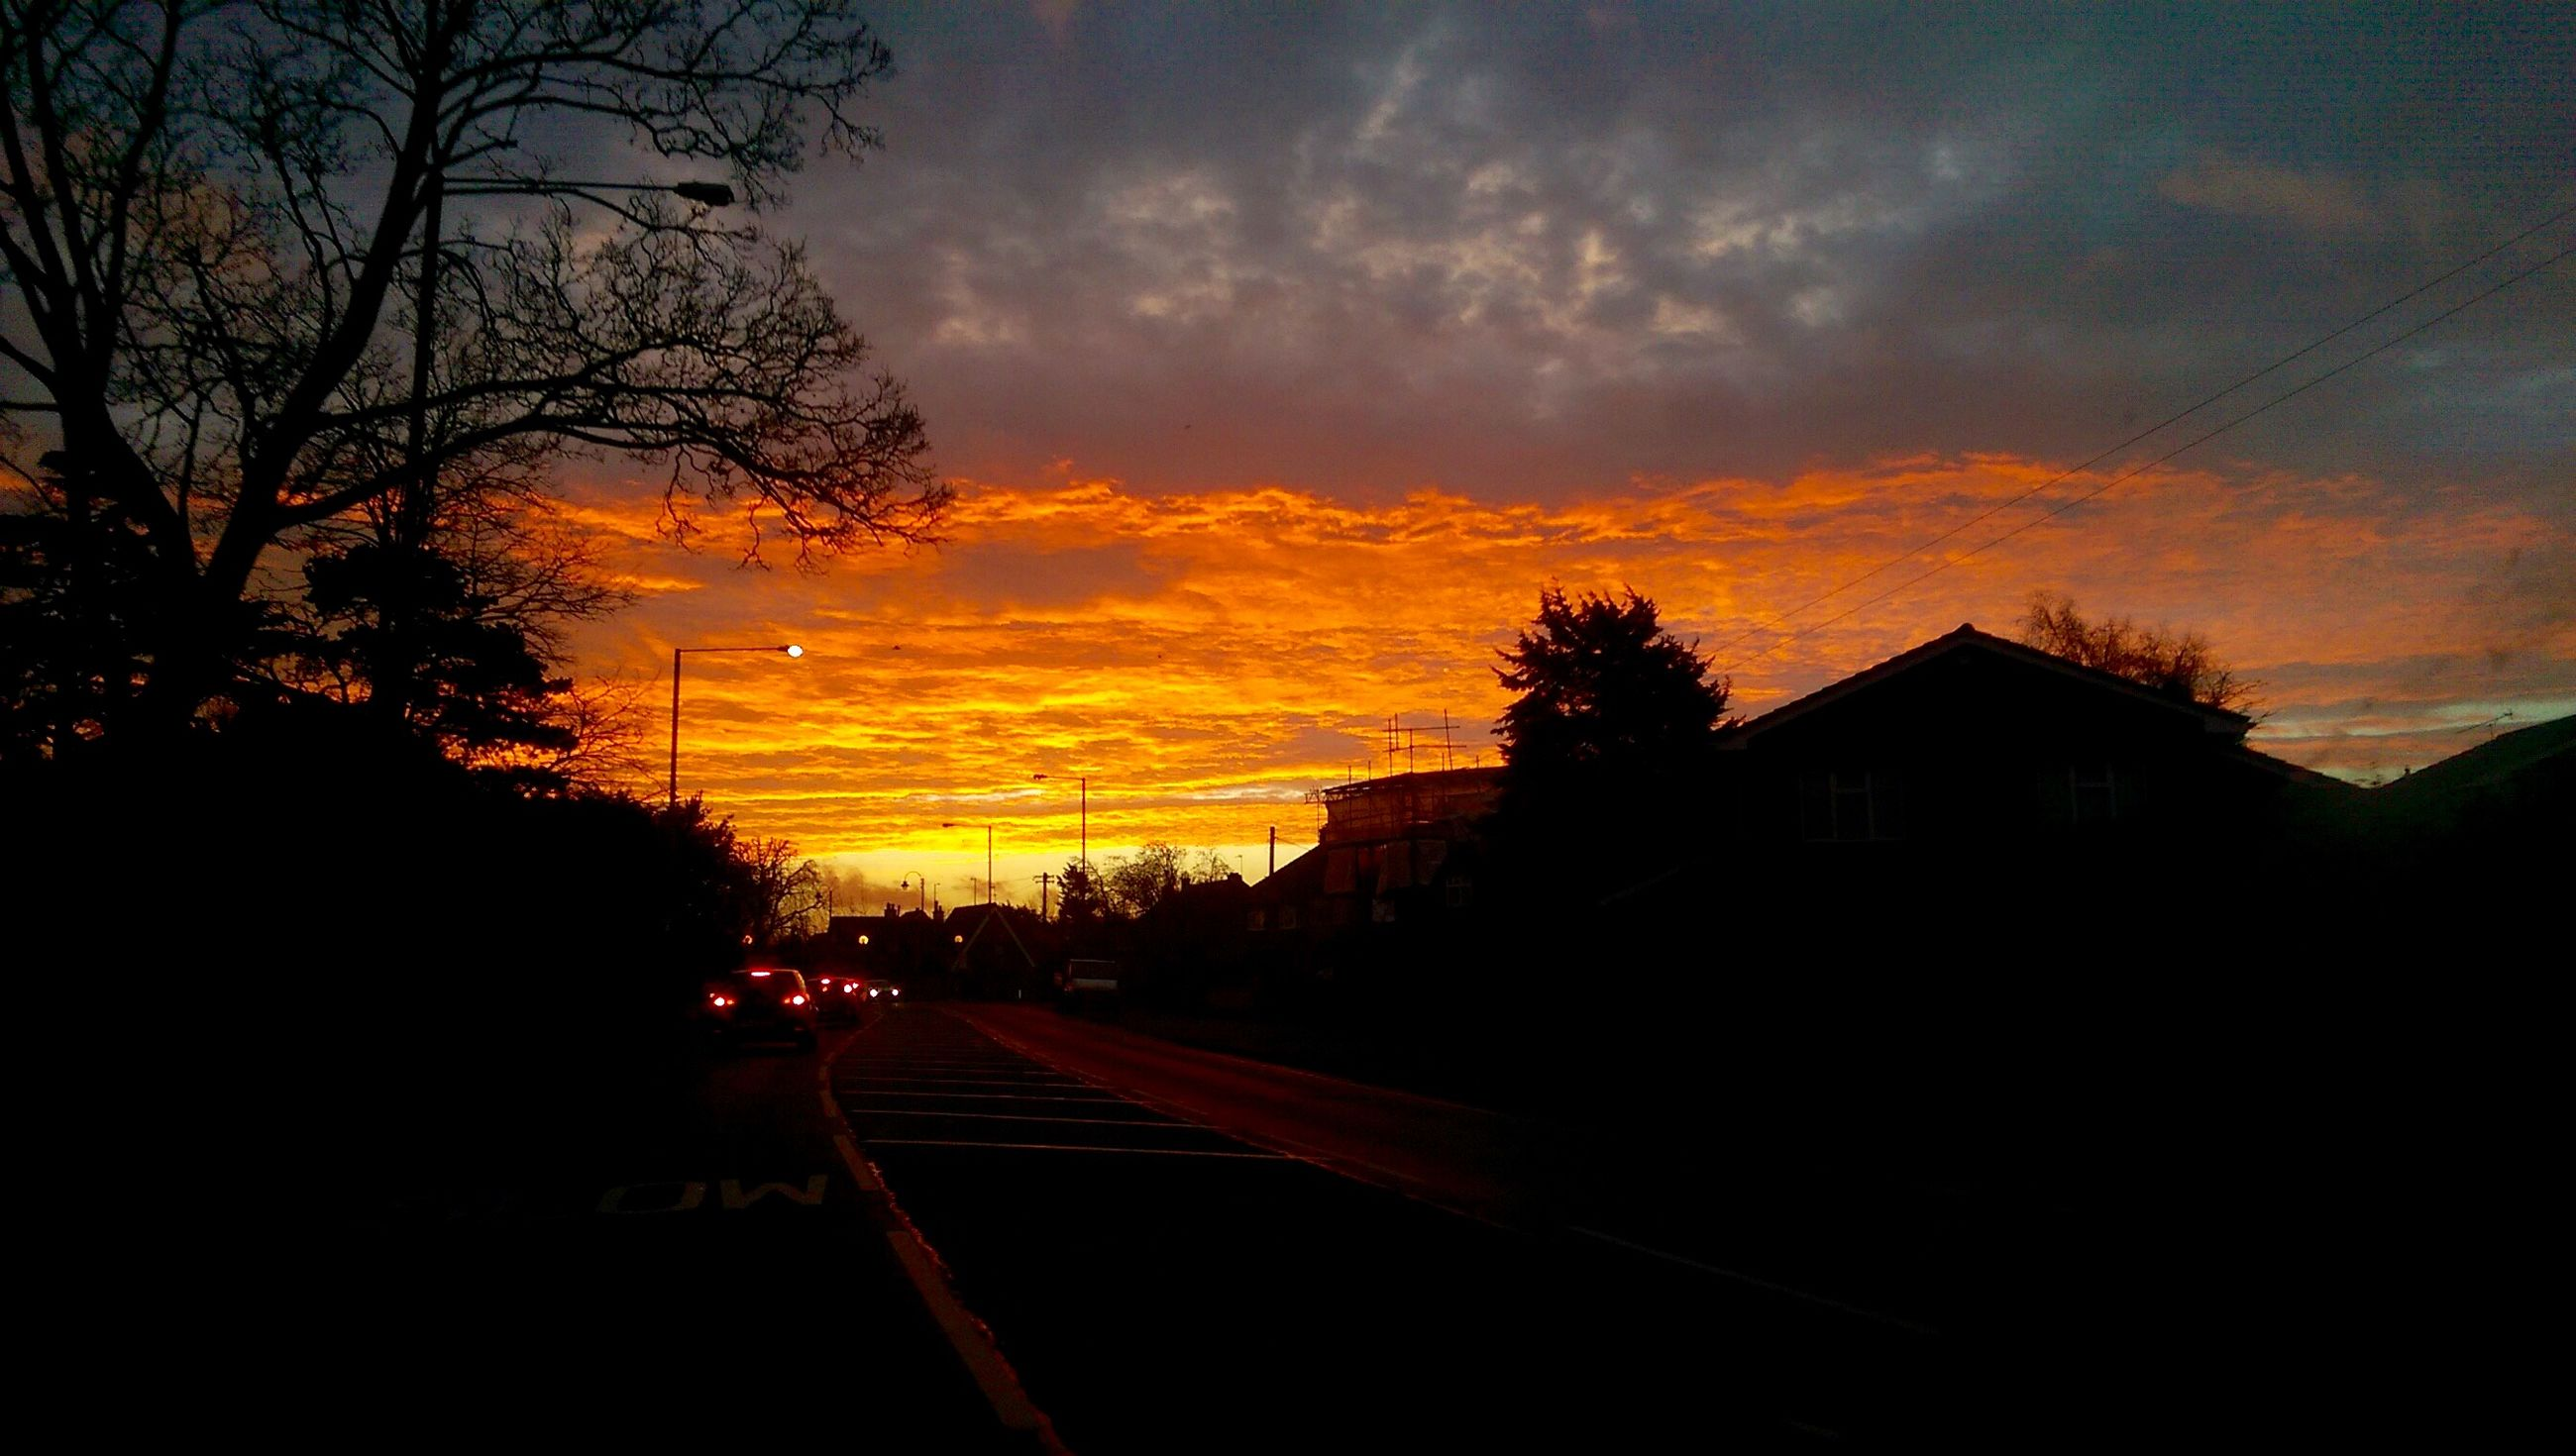 sunset, sky, transportation, silhouette, cloud - sky, tree, orange color, building exterior, the way forward, road, built structure, architecture, cloud, street, dusk, car, bare tree, dramatic sky, house, cloudy